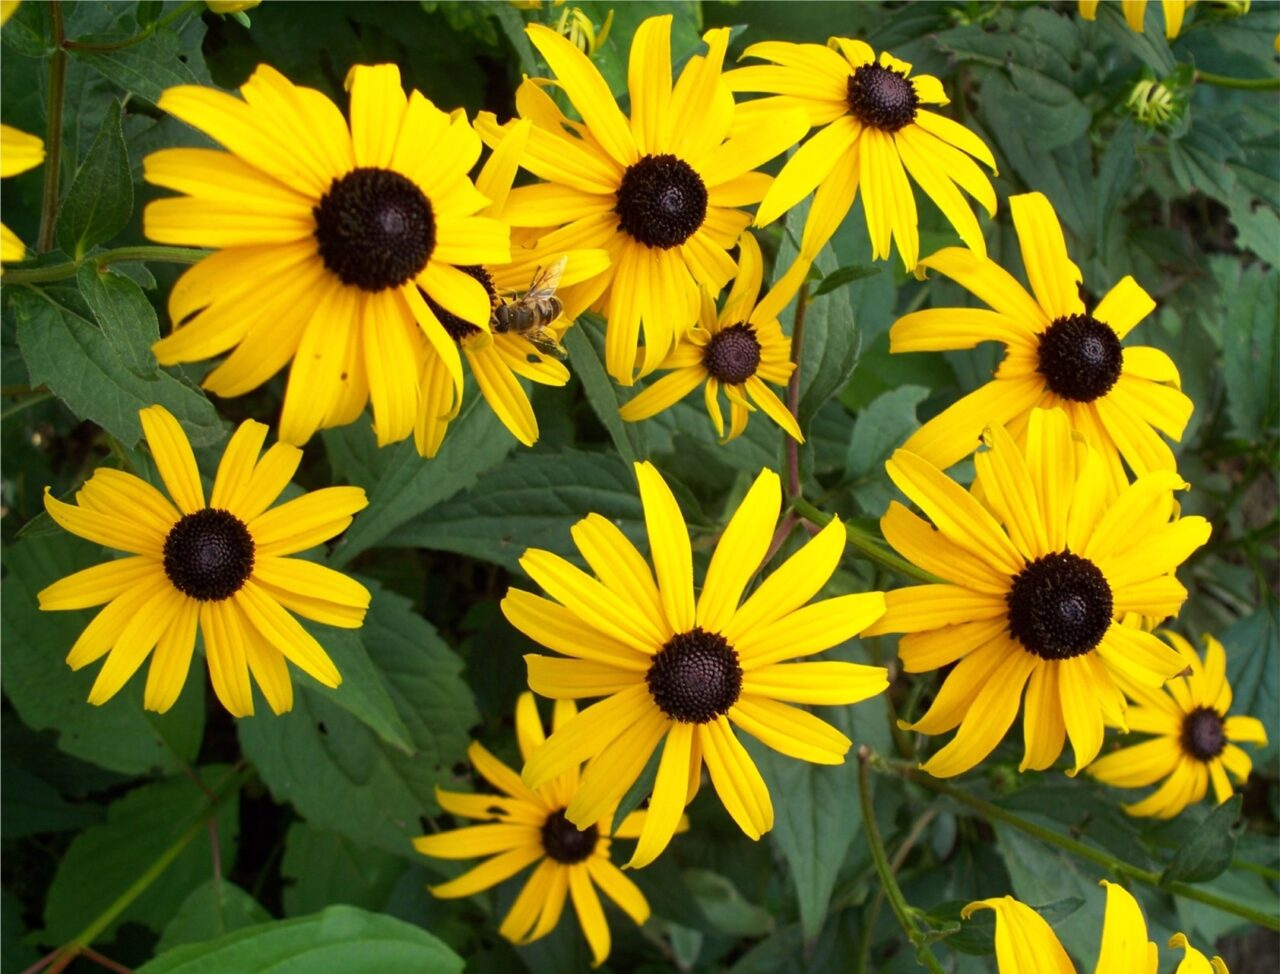 https://gclc.ca/wp-content/uploads/2015/07/Rudbeckia_with_insect-1280x974.jpg